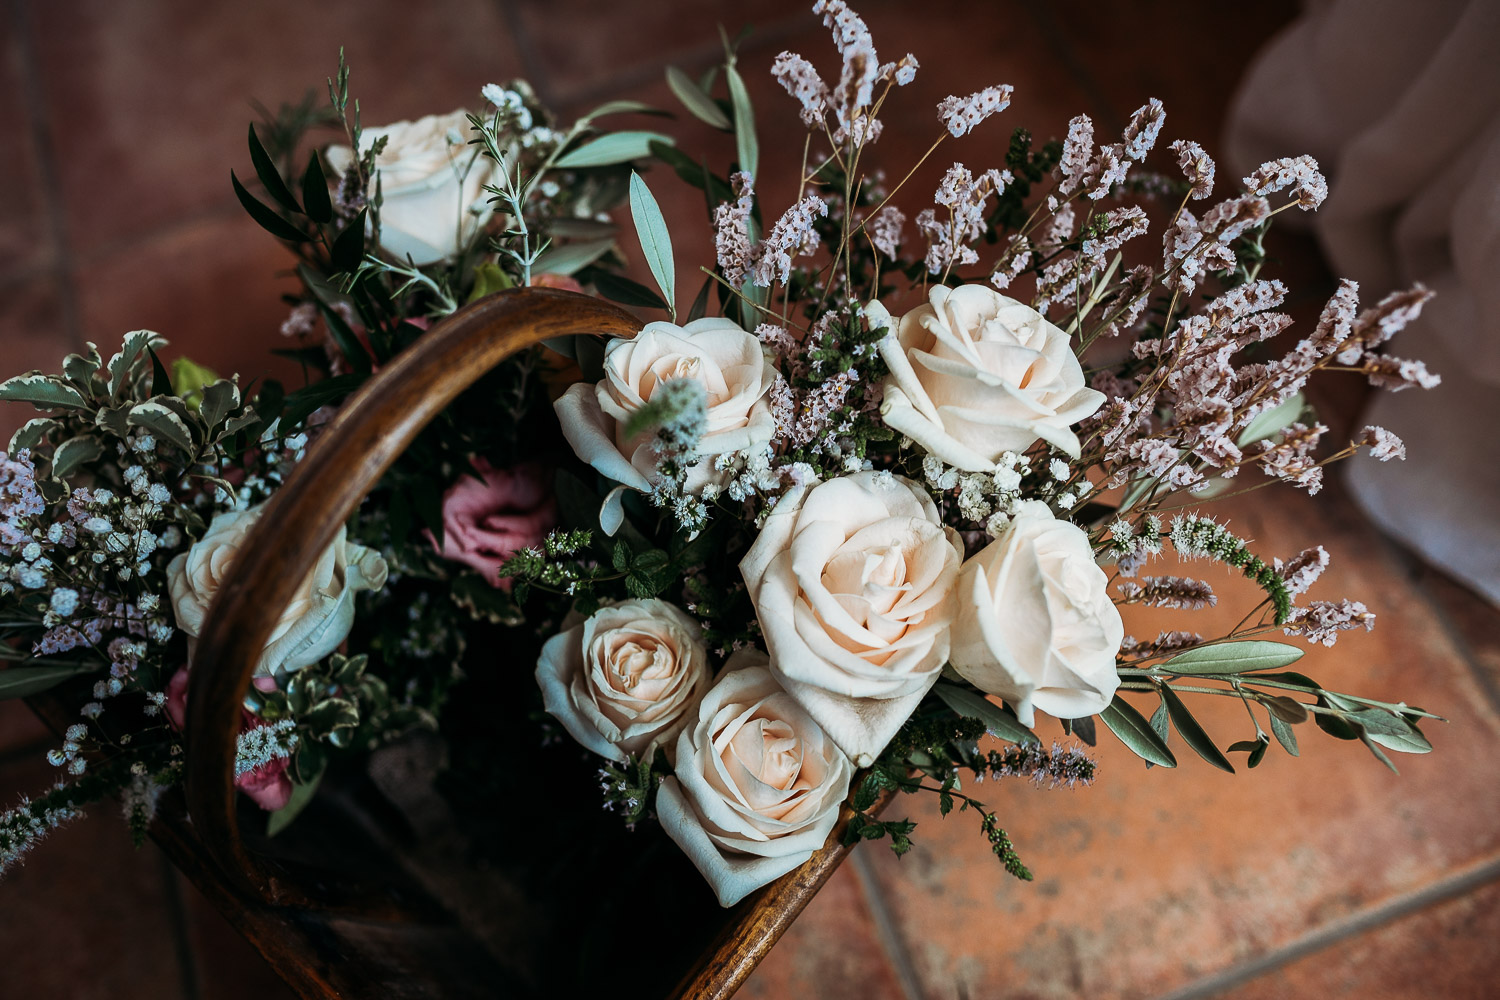 Bridal bouquet with white roses in a basket